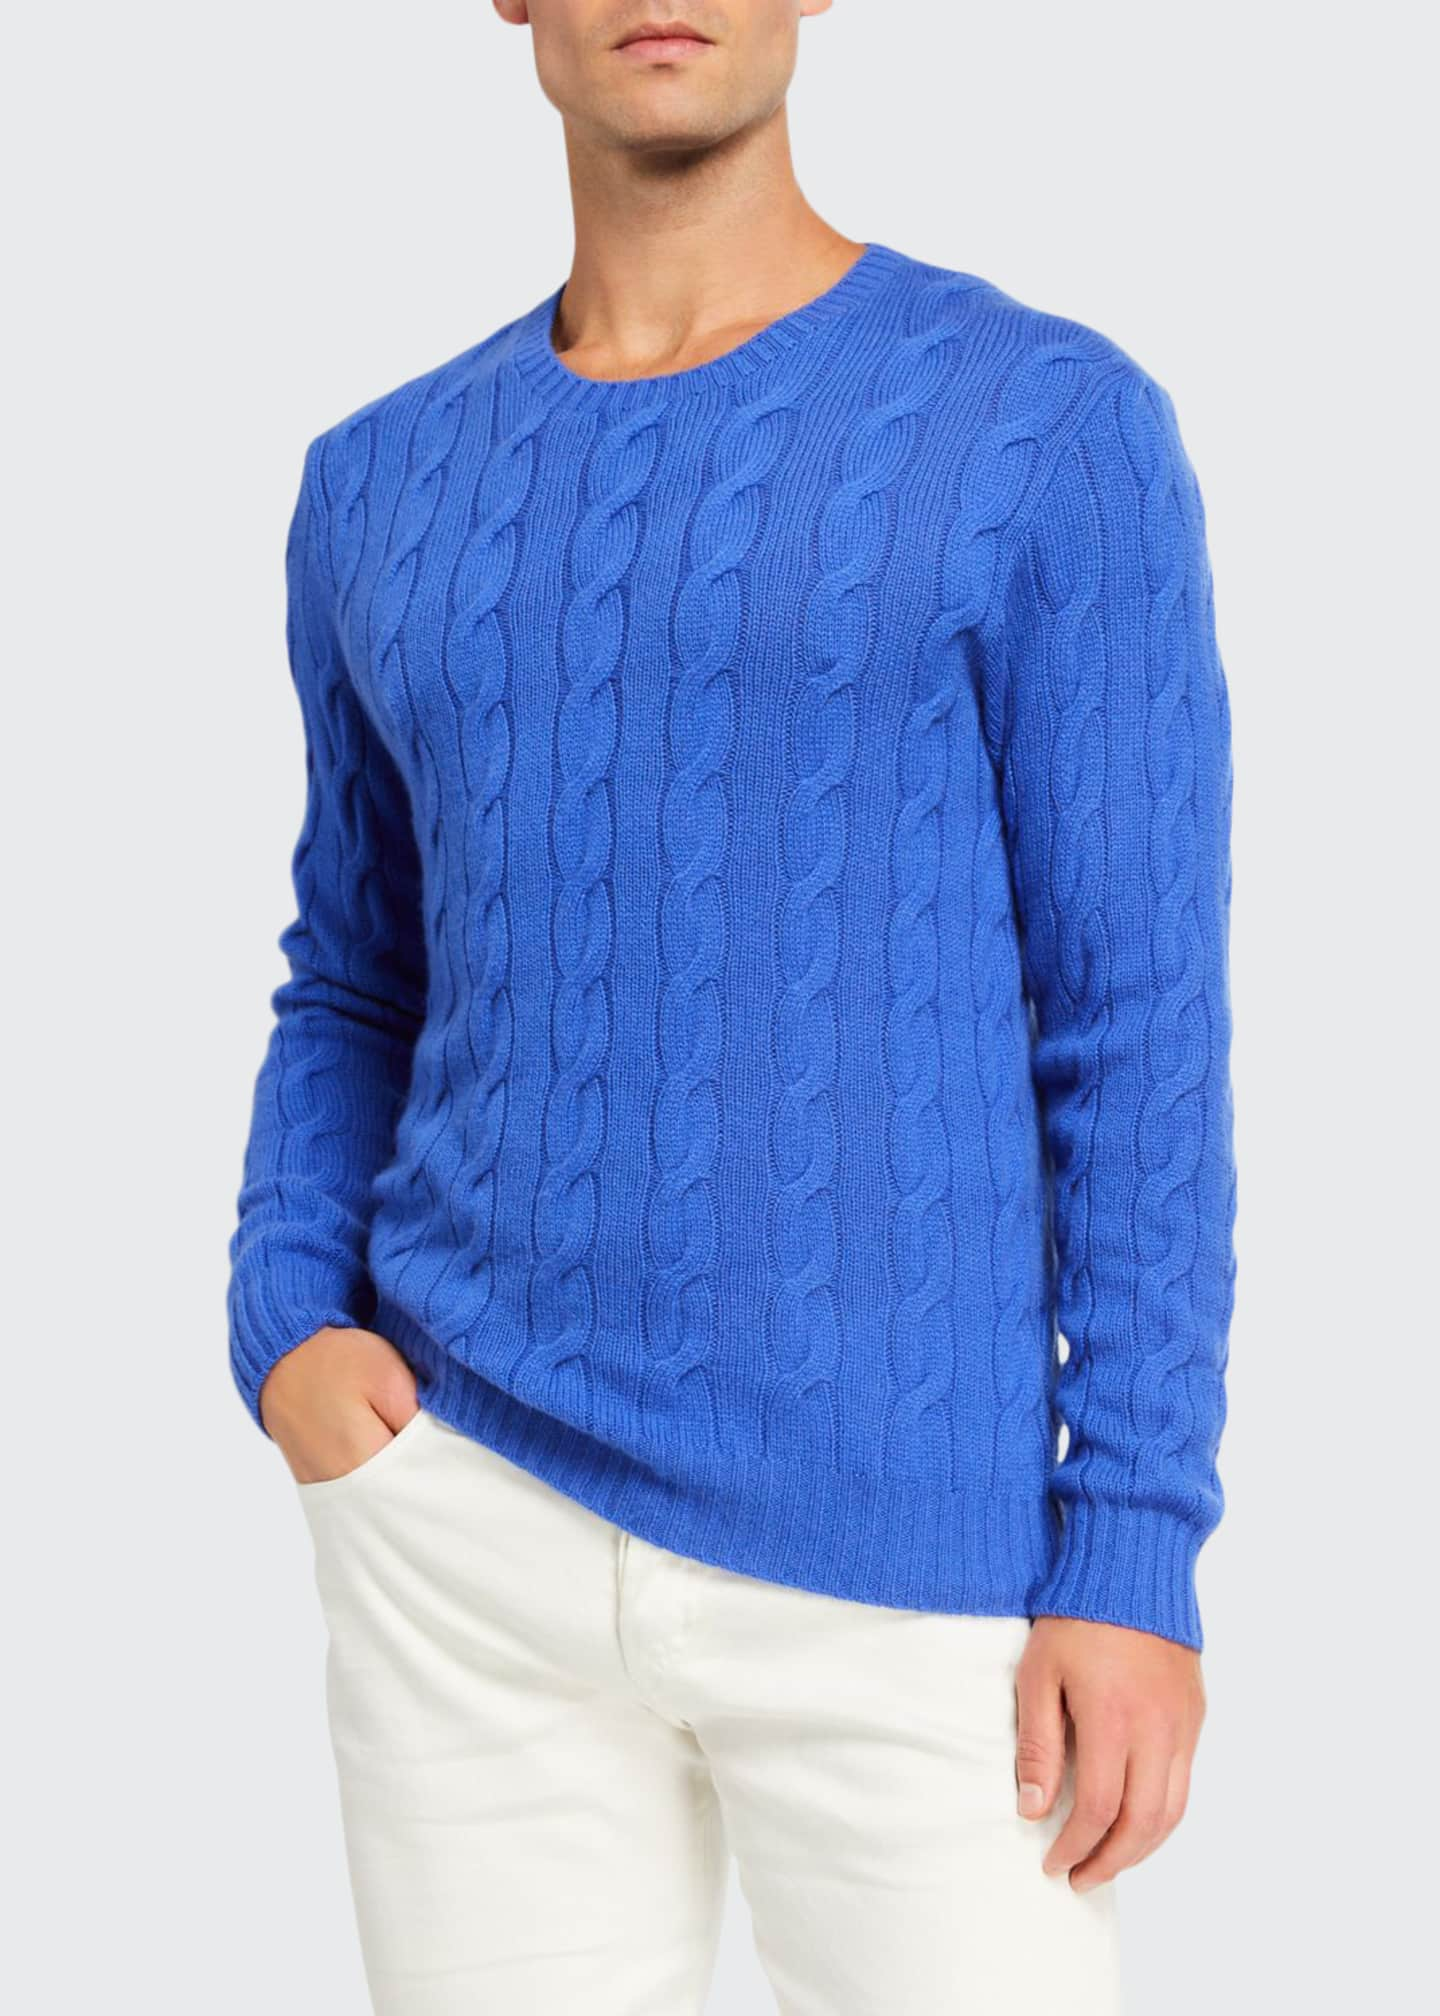 Ralph Lauren Cashmere Cable-Knit Crewneck Sweater, Blue